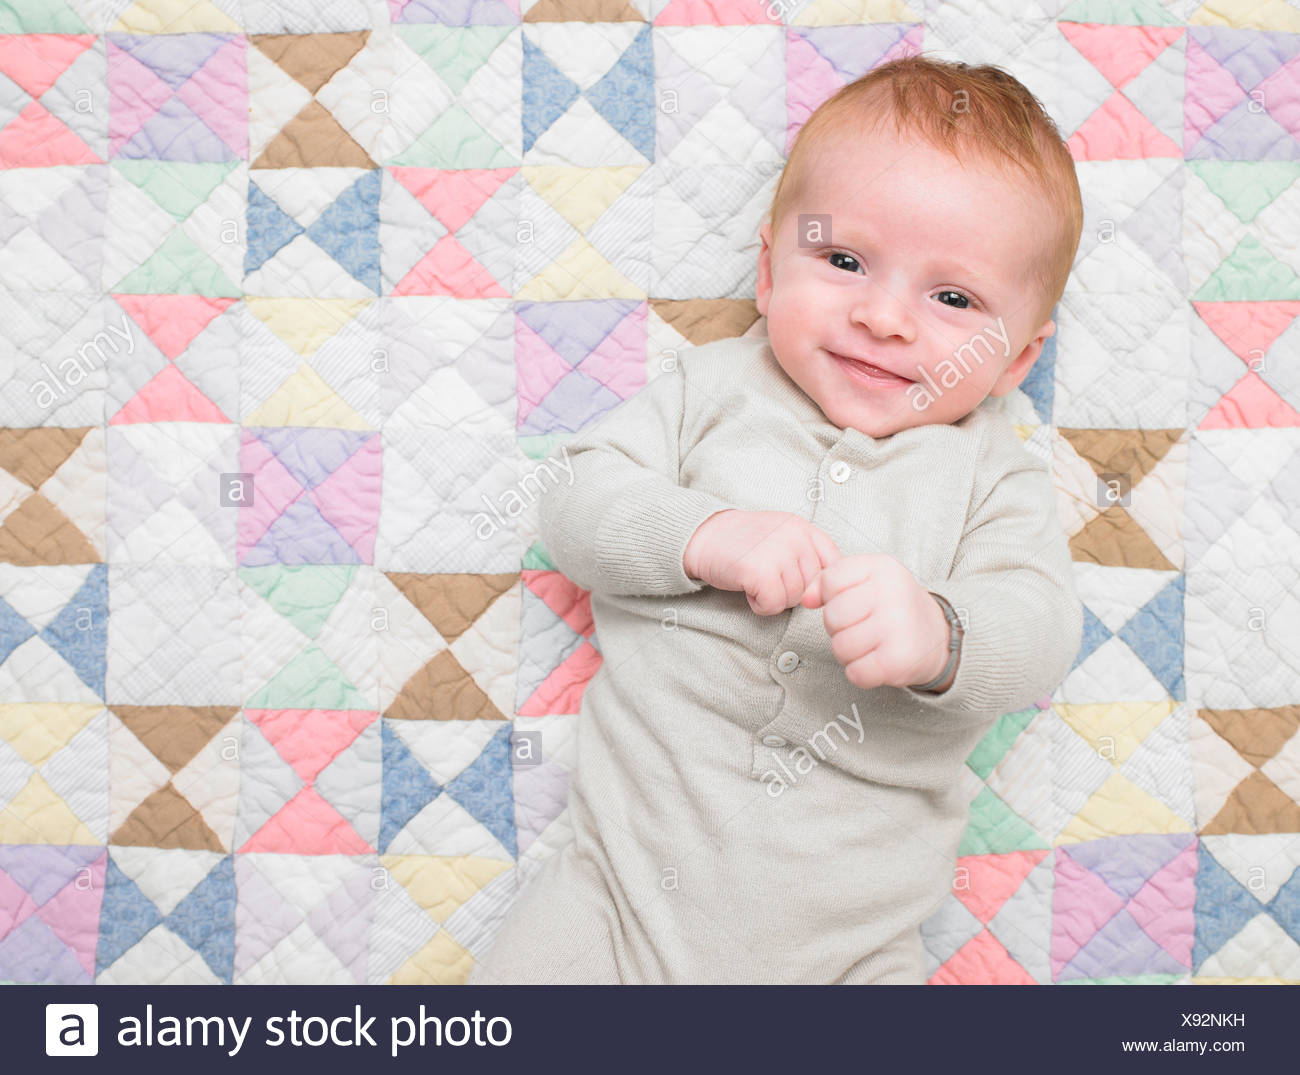 Smiling baby on quilt - Stock Image